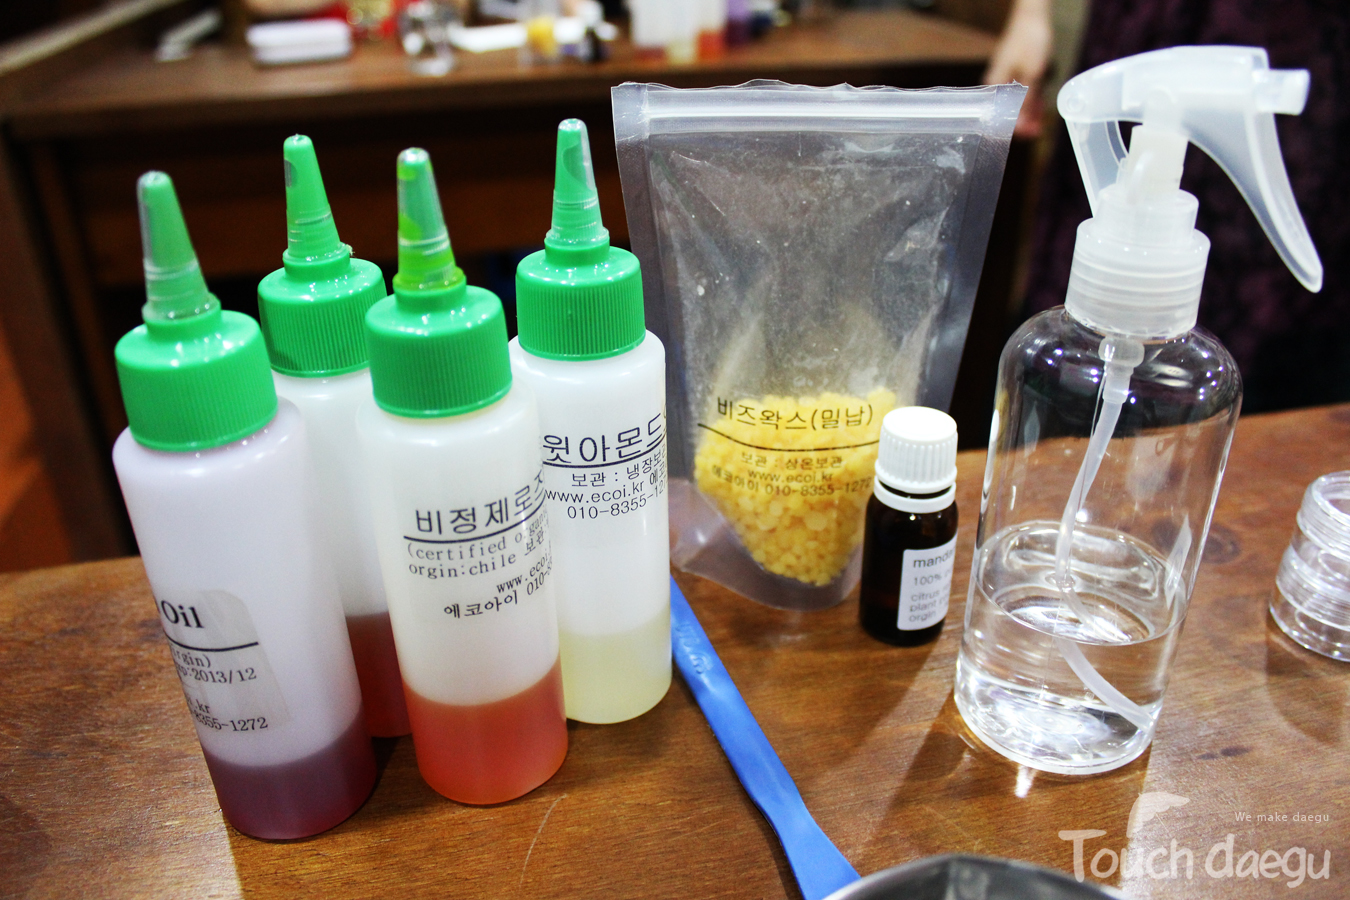 The ingredients and equipment for making lip balm